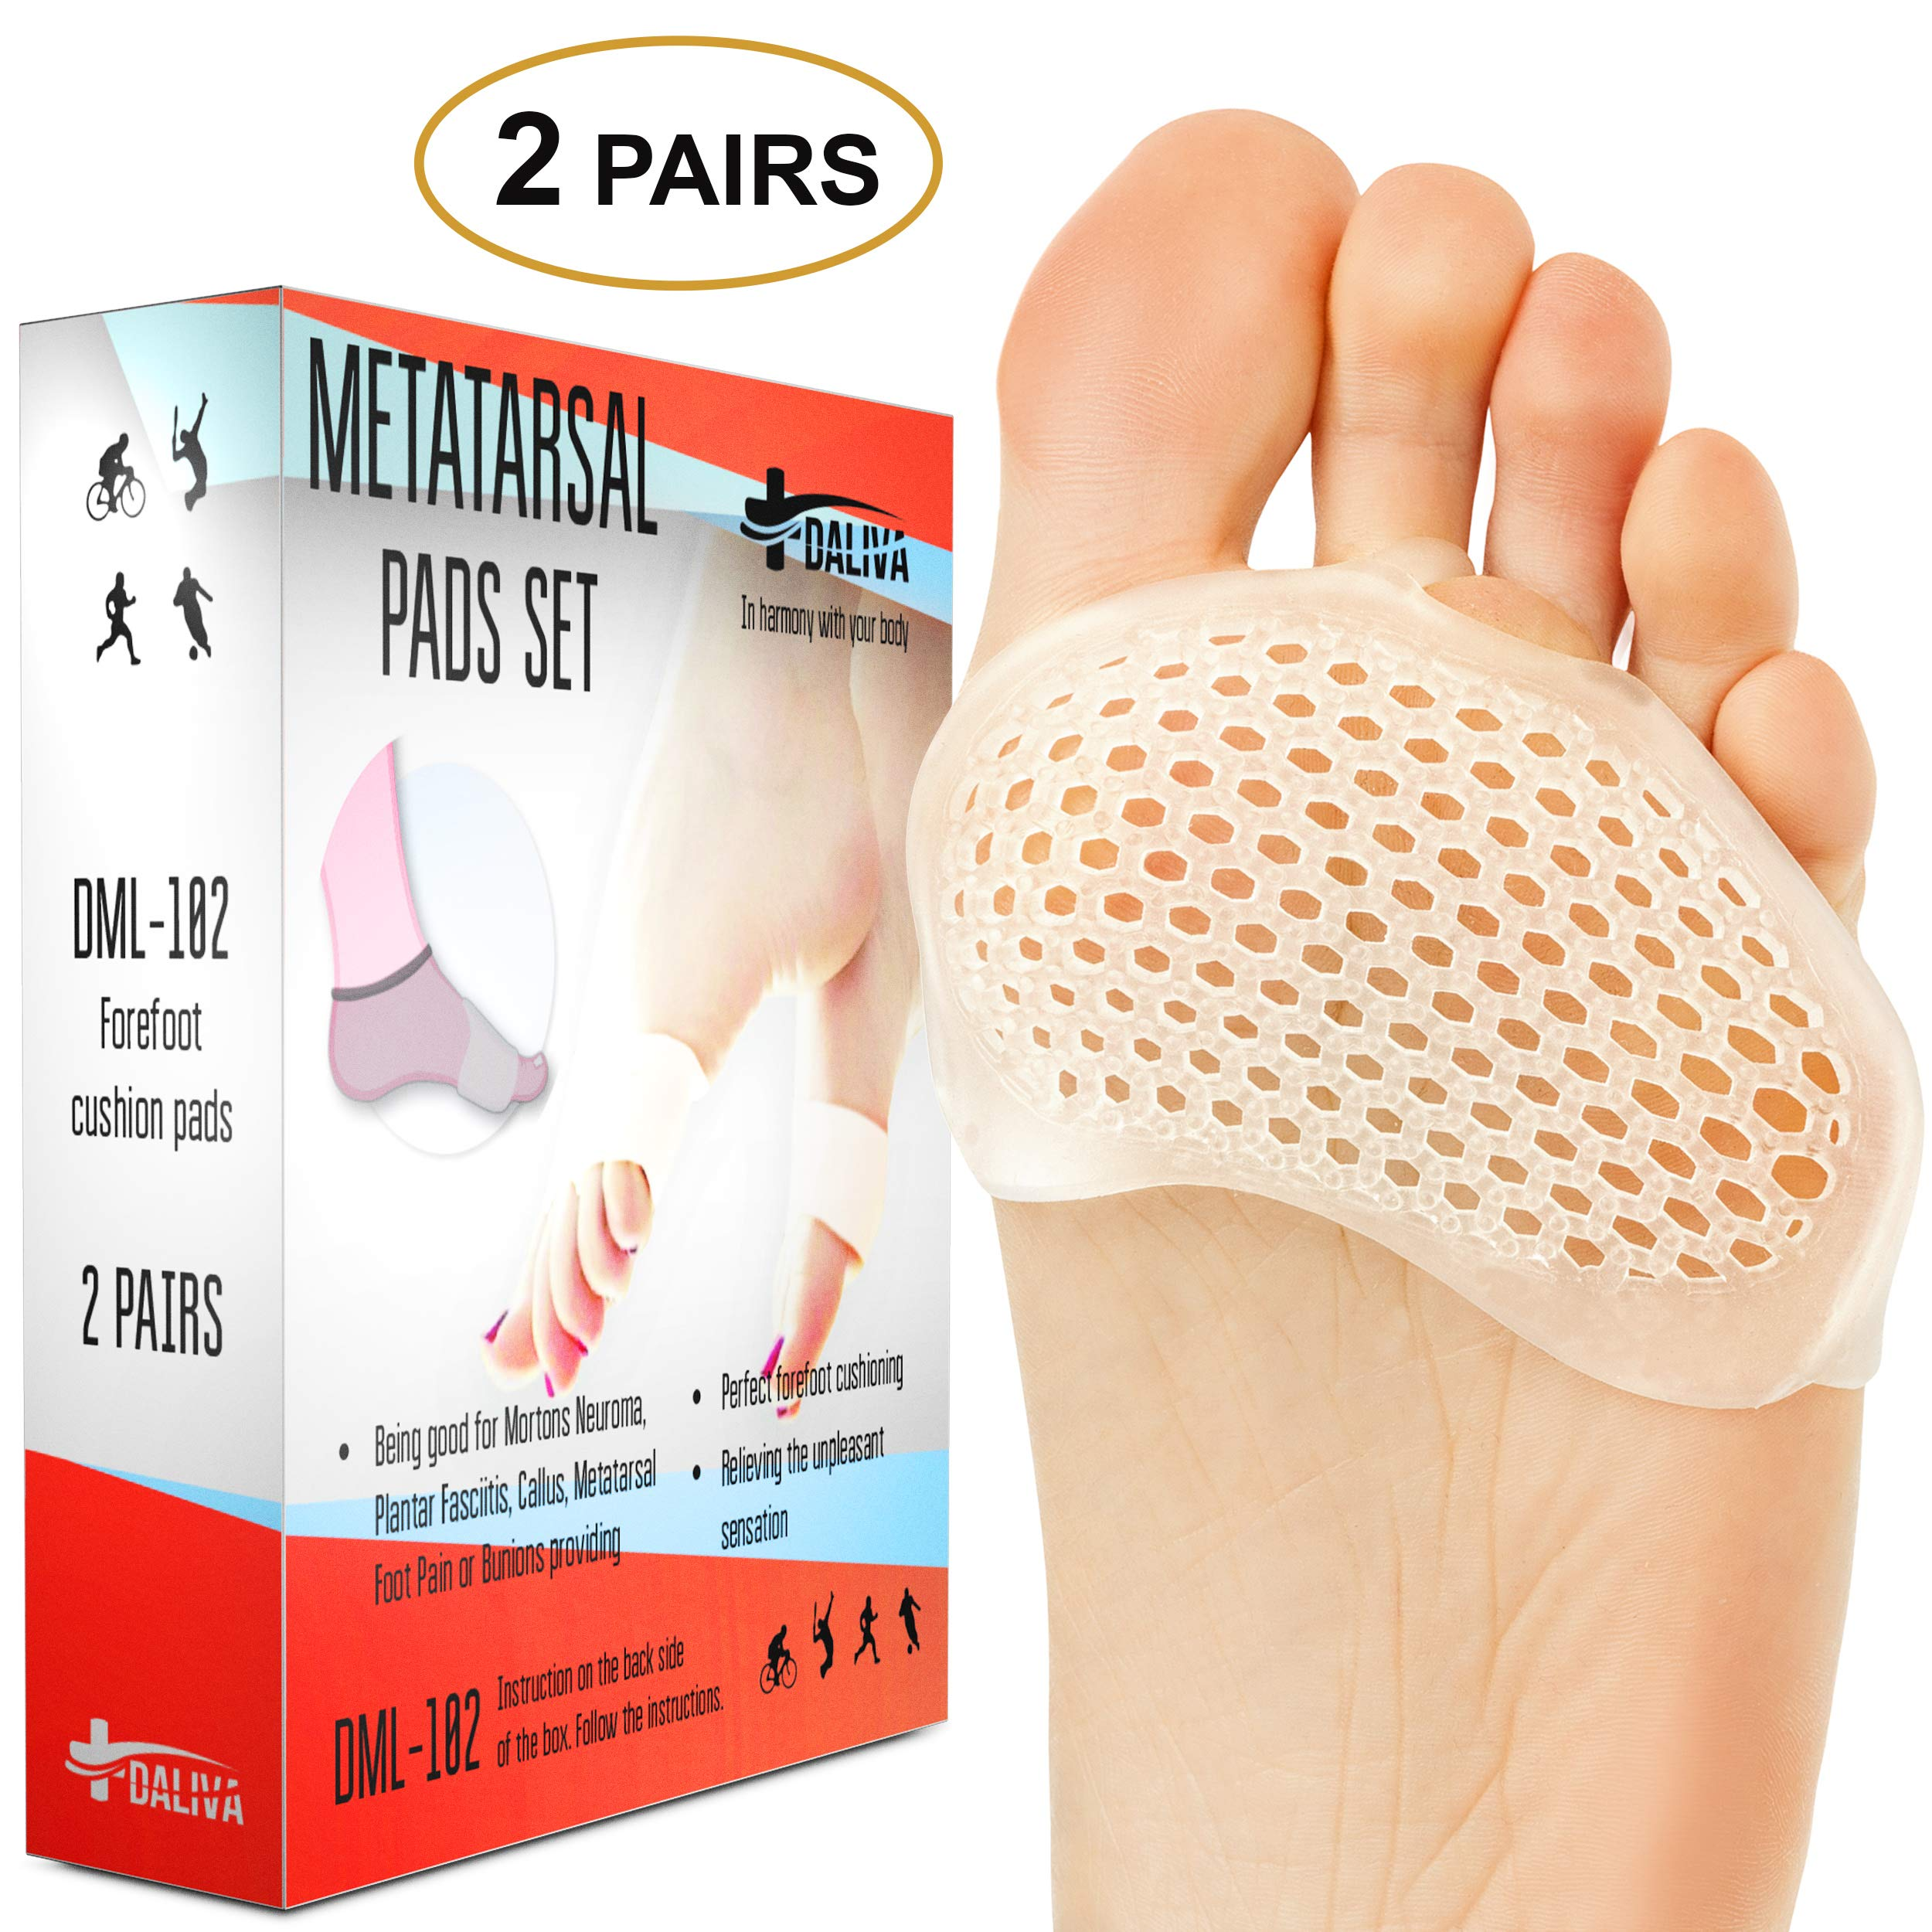 Ball of Foot Cushions - Metatarsal Pads Forefoot Pad - Metatarsal Cushion Mortons Neuroma - Metatarsal Foot Pads - Gel Foot Cushion - Mortons Neuroma Callus Metatarsal - Soft Gel Inserts by DALIVA